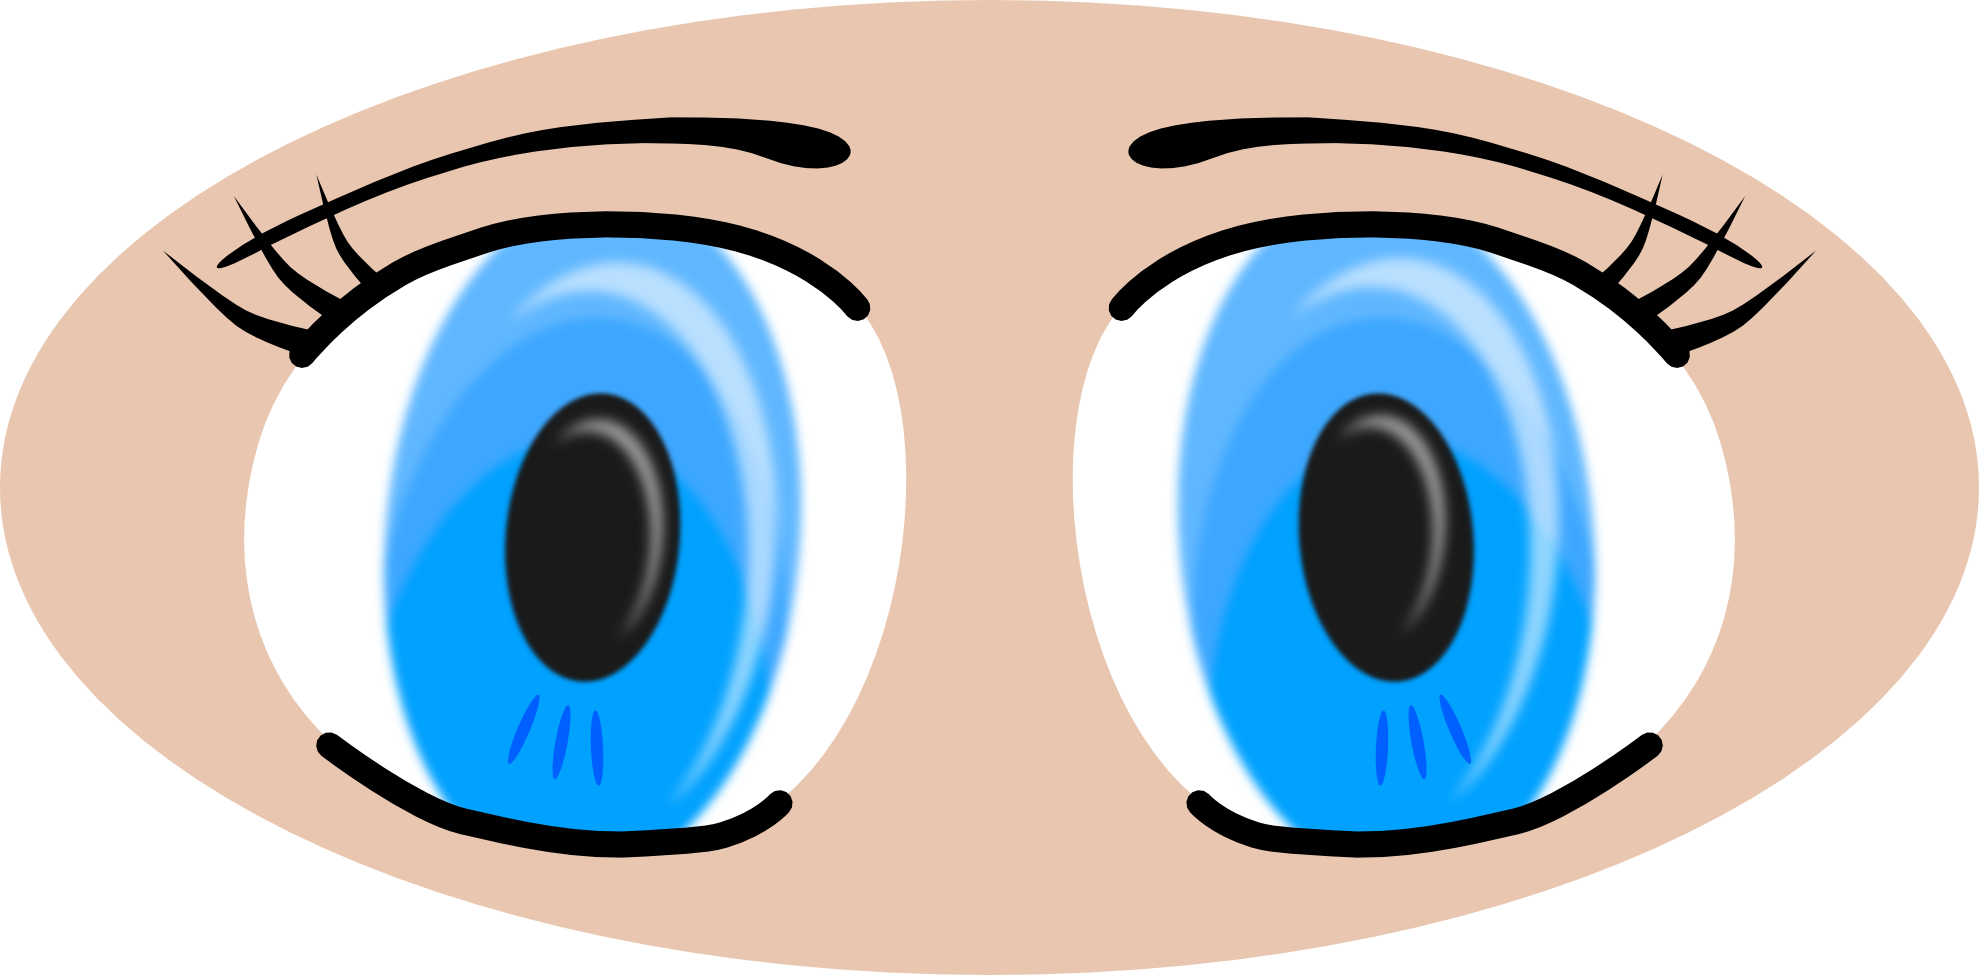 Free Eyes Cliparts, Download Free Clip Art, Free Clip Art on.